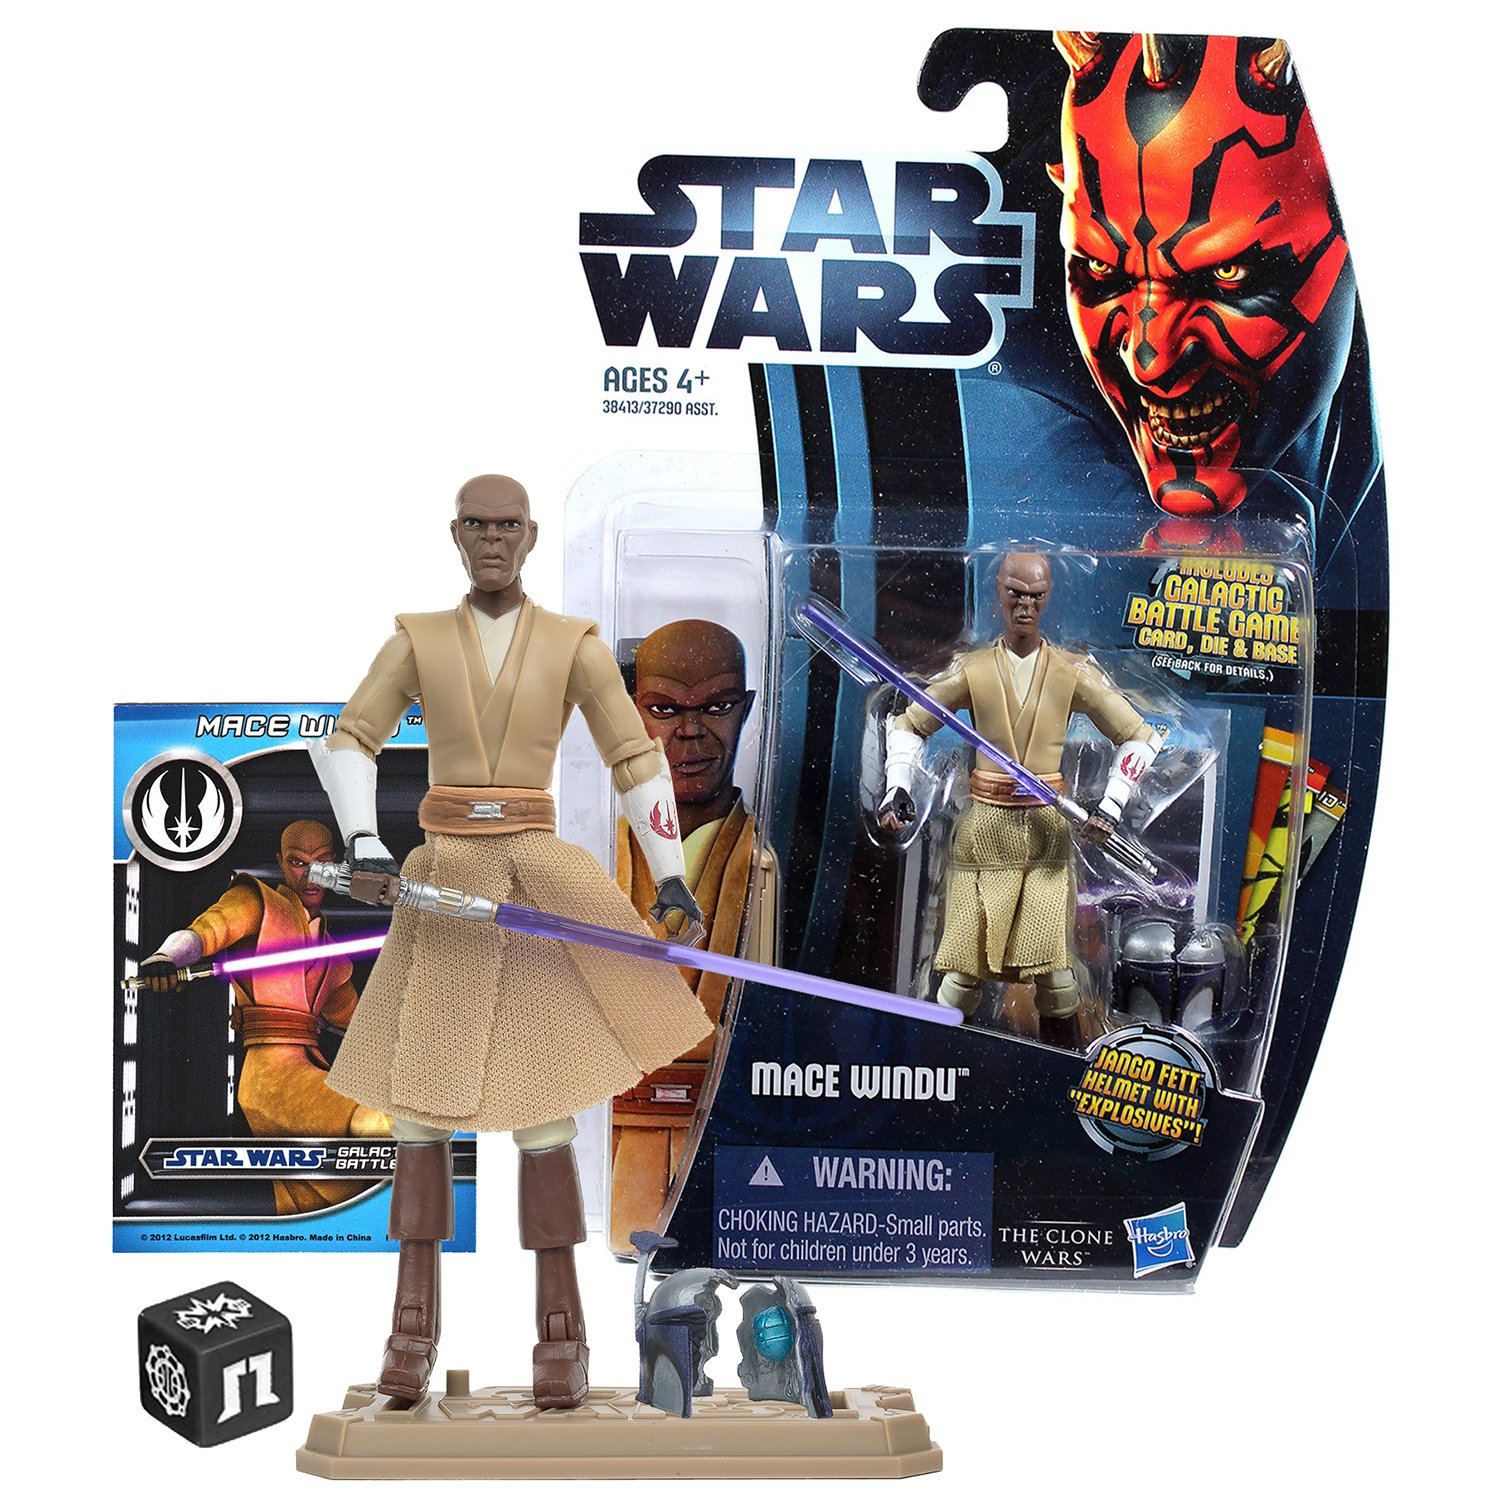 STAR WARS YEAR 2012 The Clone Wars Series 4 Inch Tall Figure – Mace Windu cw8 withライトセーバー、Jango Fett 's Brokenヘルメット、カード、Die and Display Base B079PNFLZD